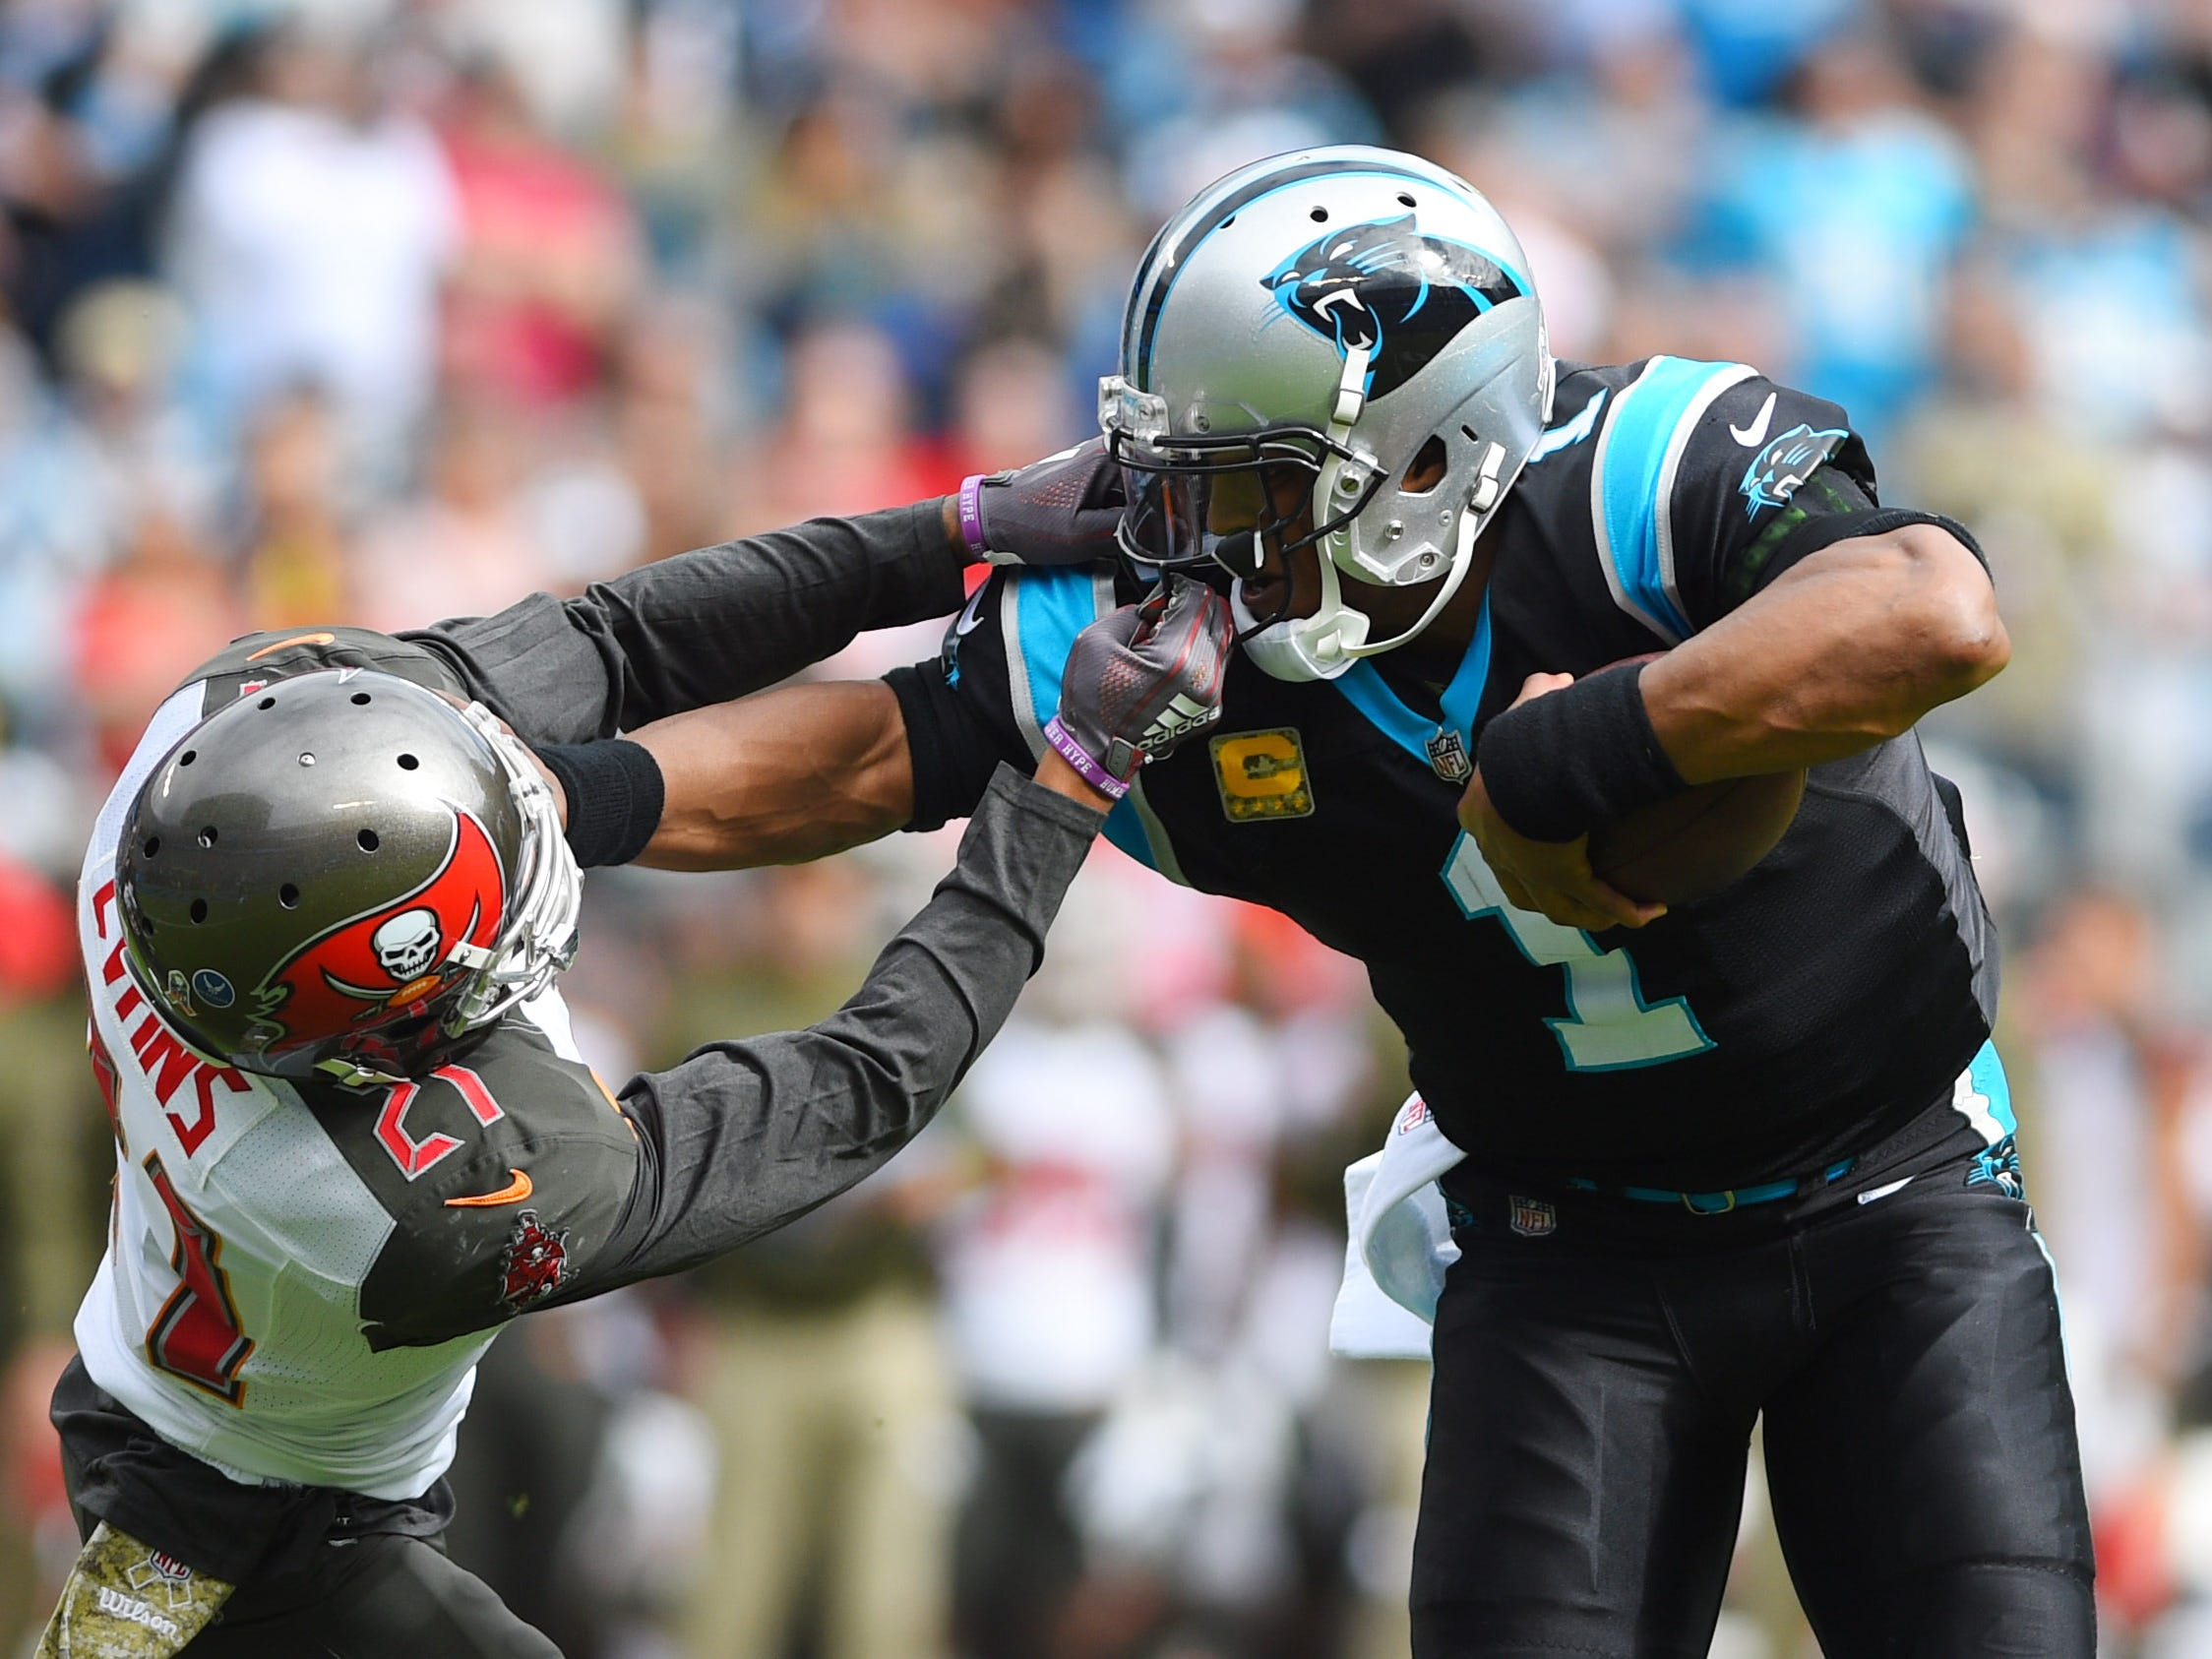 Week 9: Carolina Panthers quarterback Cam Newton runs with the ball as Tampa Bay Buccaneers strong safety Justin Evans defends in the first quarter at Bank of America Stadium. The Panthers won the game, 42-28.